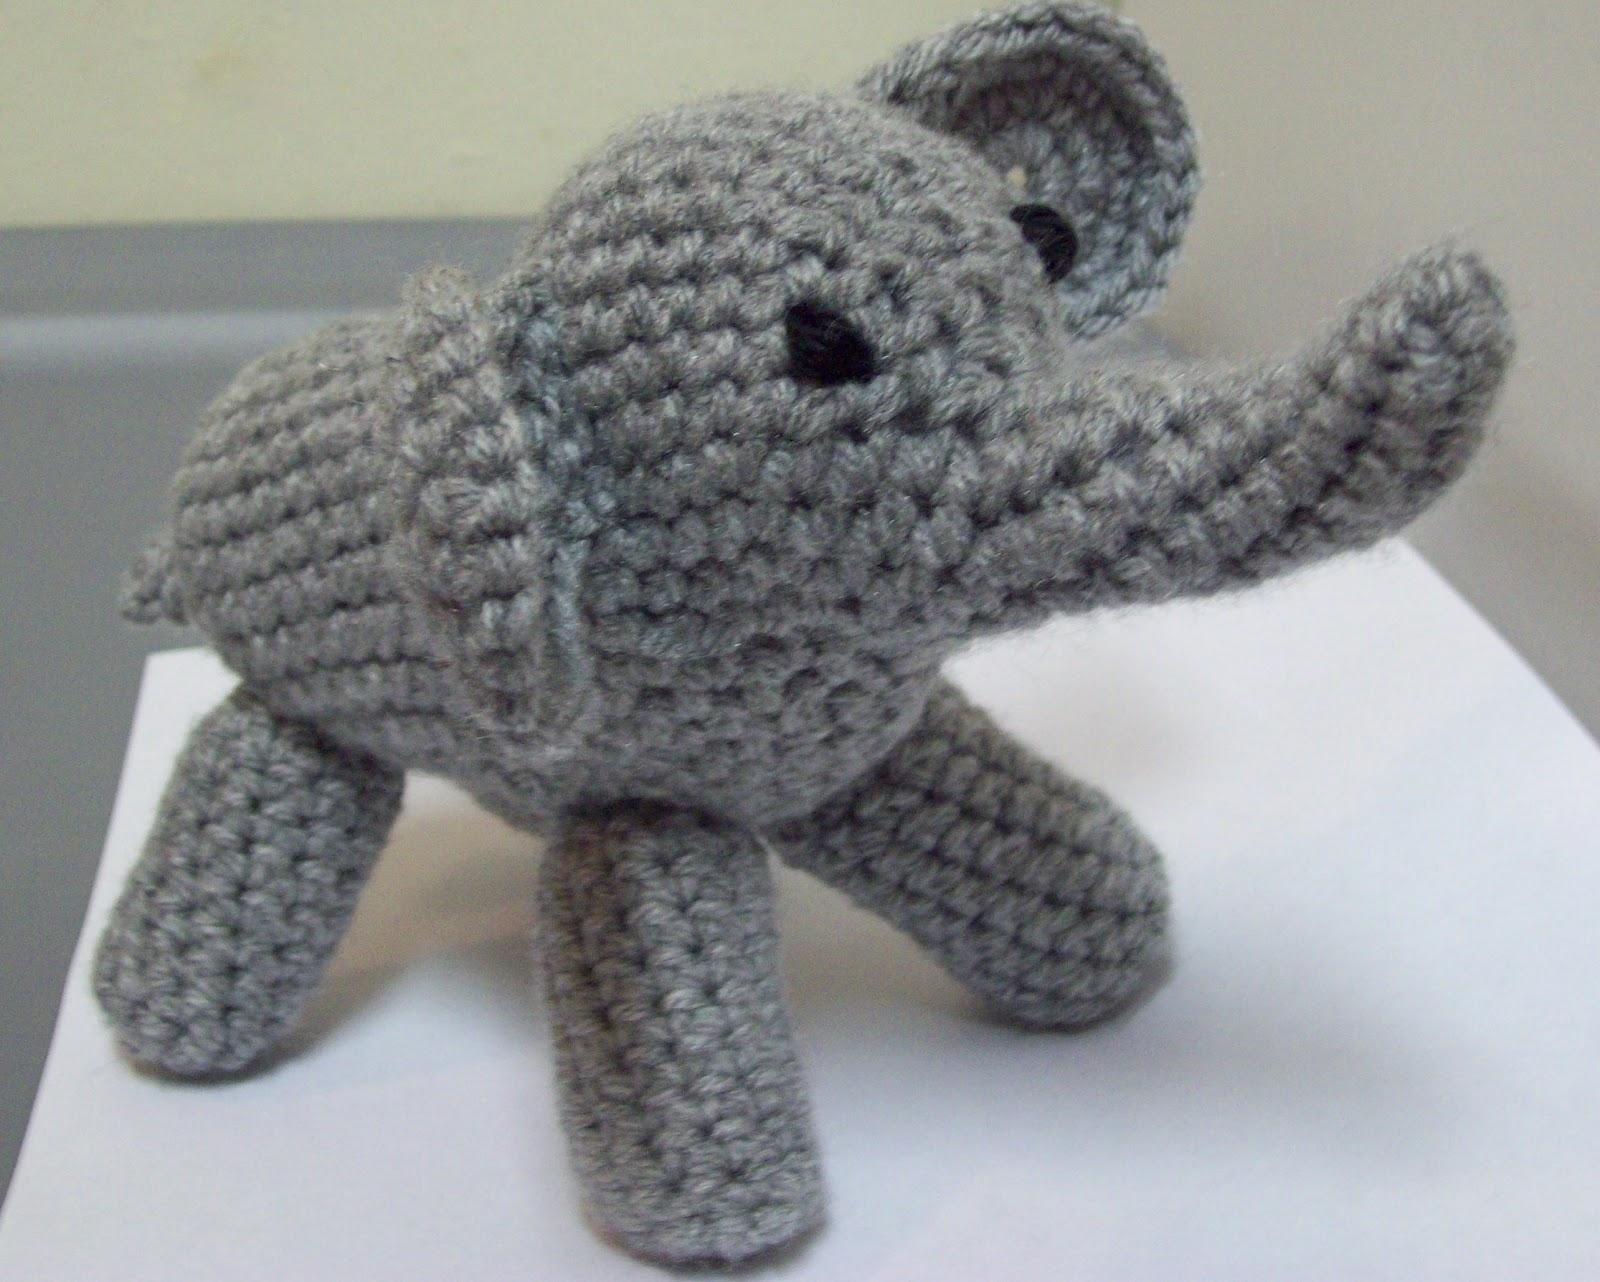 Crochet Elephant : The Philosophers Wife: Amigurumi (Crochet) Elephant